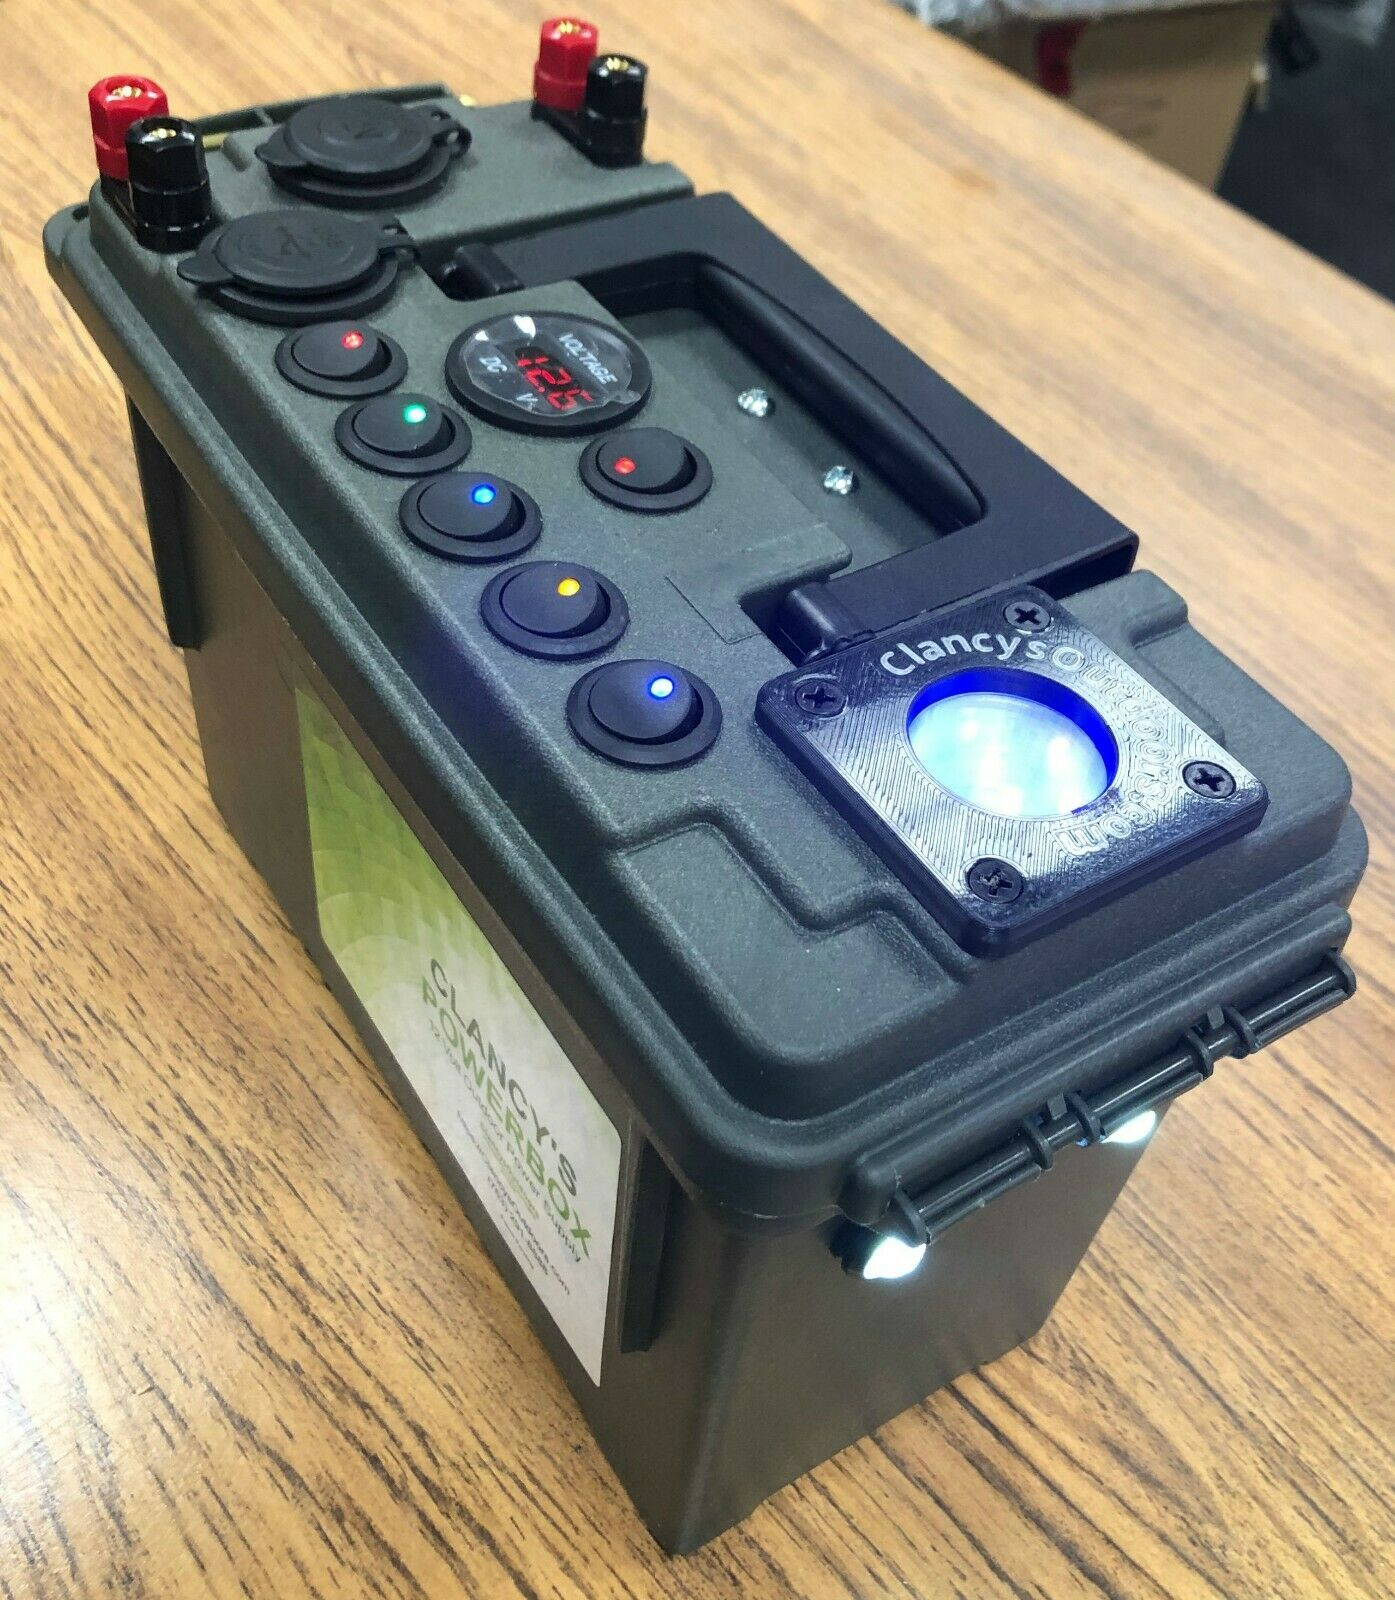 Clancy's PowerBox 12 Volt Battery Box With Ice Jig Glow Cup.